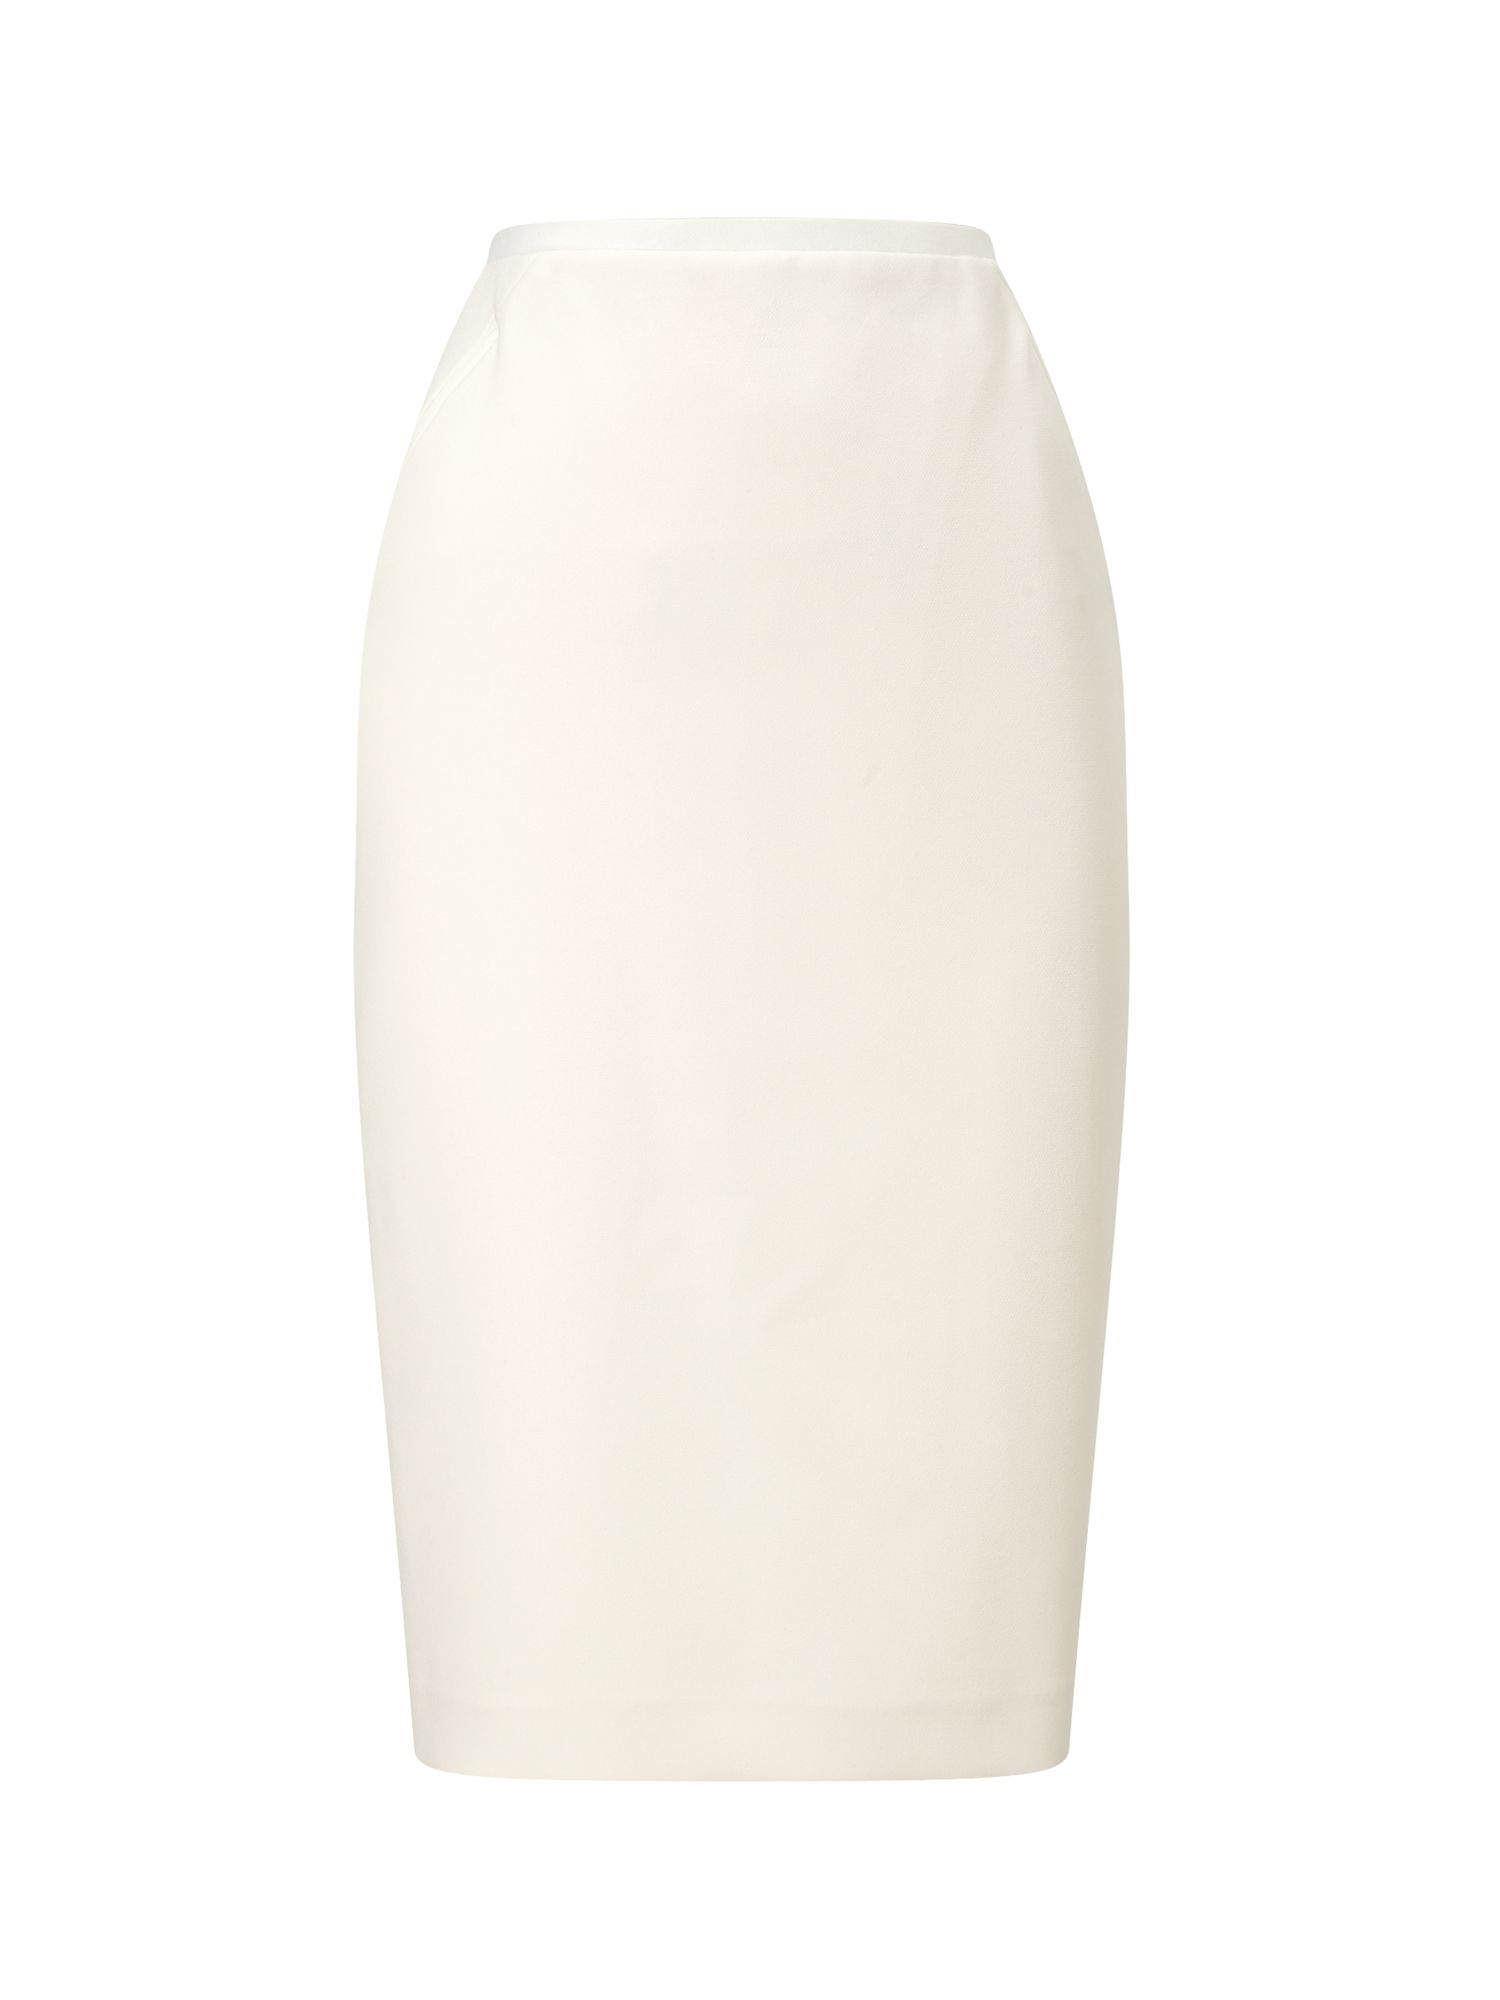 Precis Petite Jeff Banks Petite Pencil Skirt, Neutral